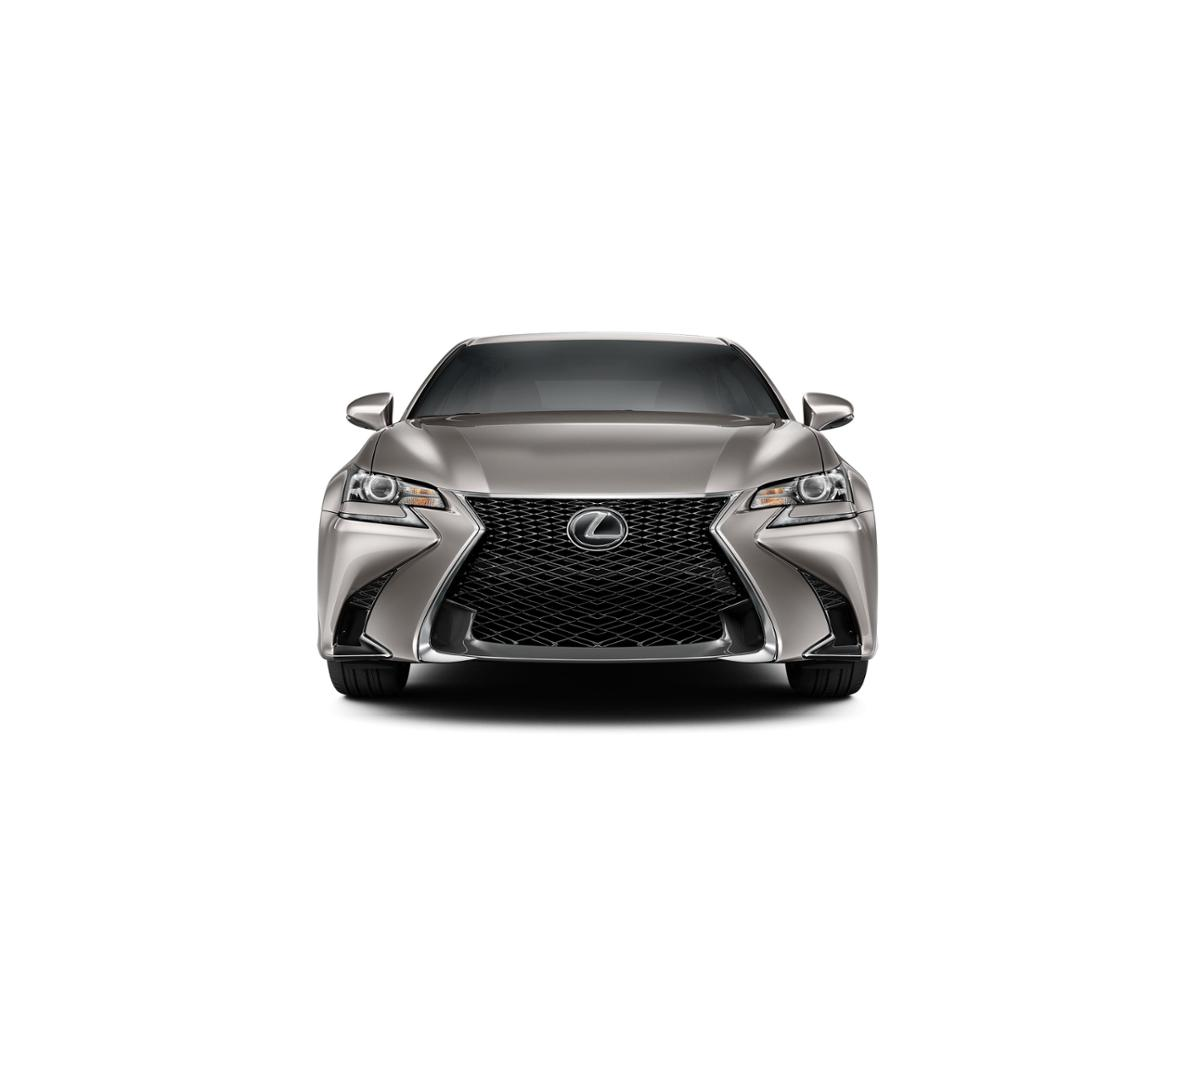 2014 Lexus Is F Sport For Sale: New Atomic Silver 2019 Lexus GS 350 F SPORT For Sale